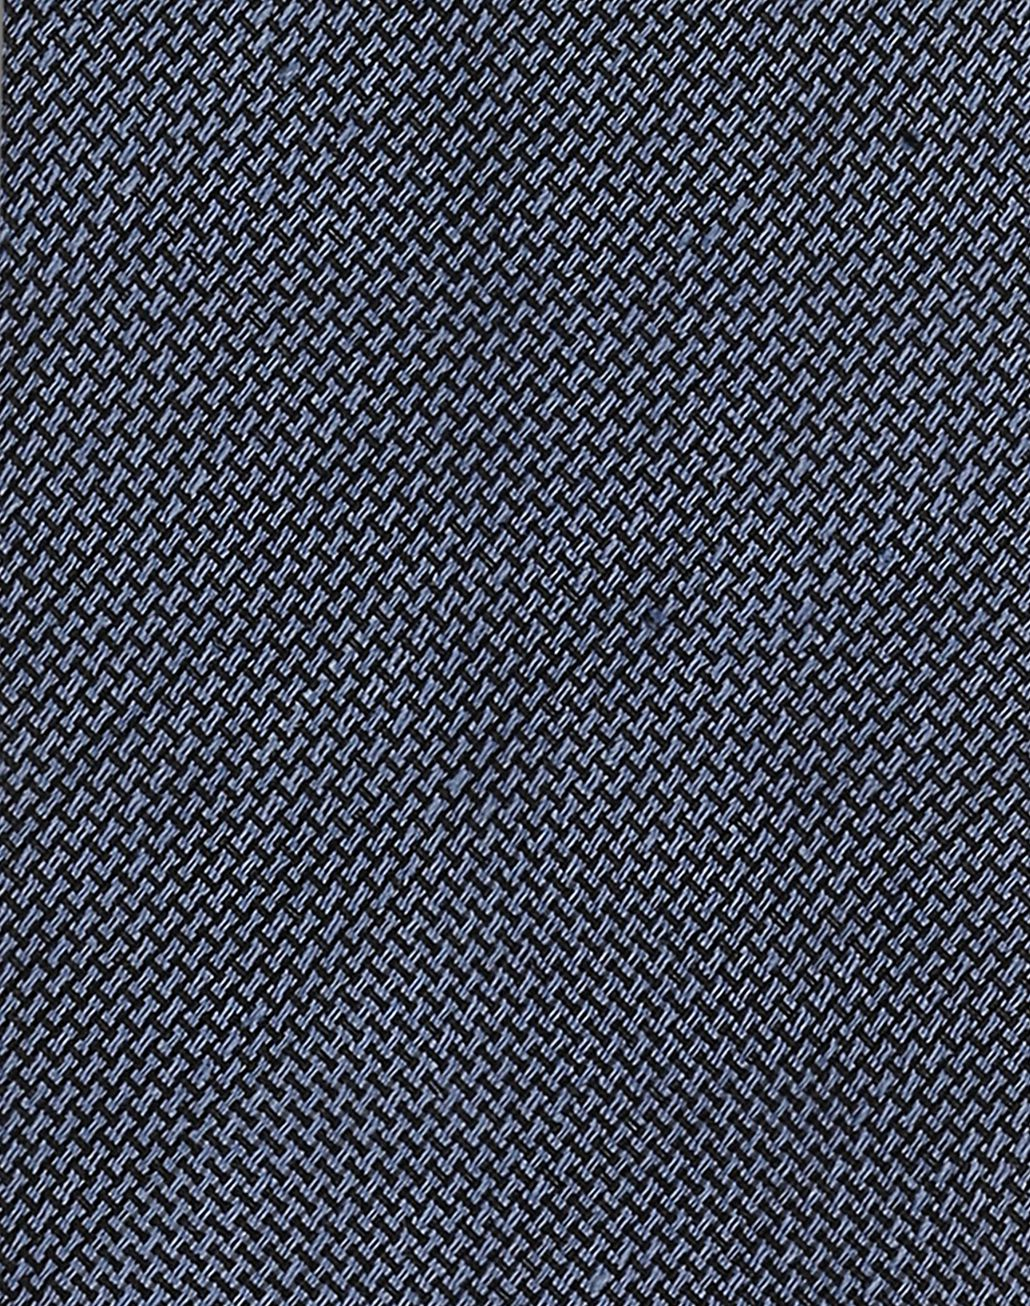 BRIONI Bluette Unlined Tie Tie Man d